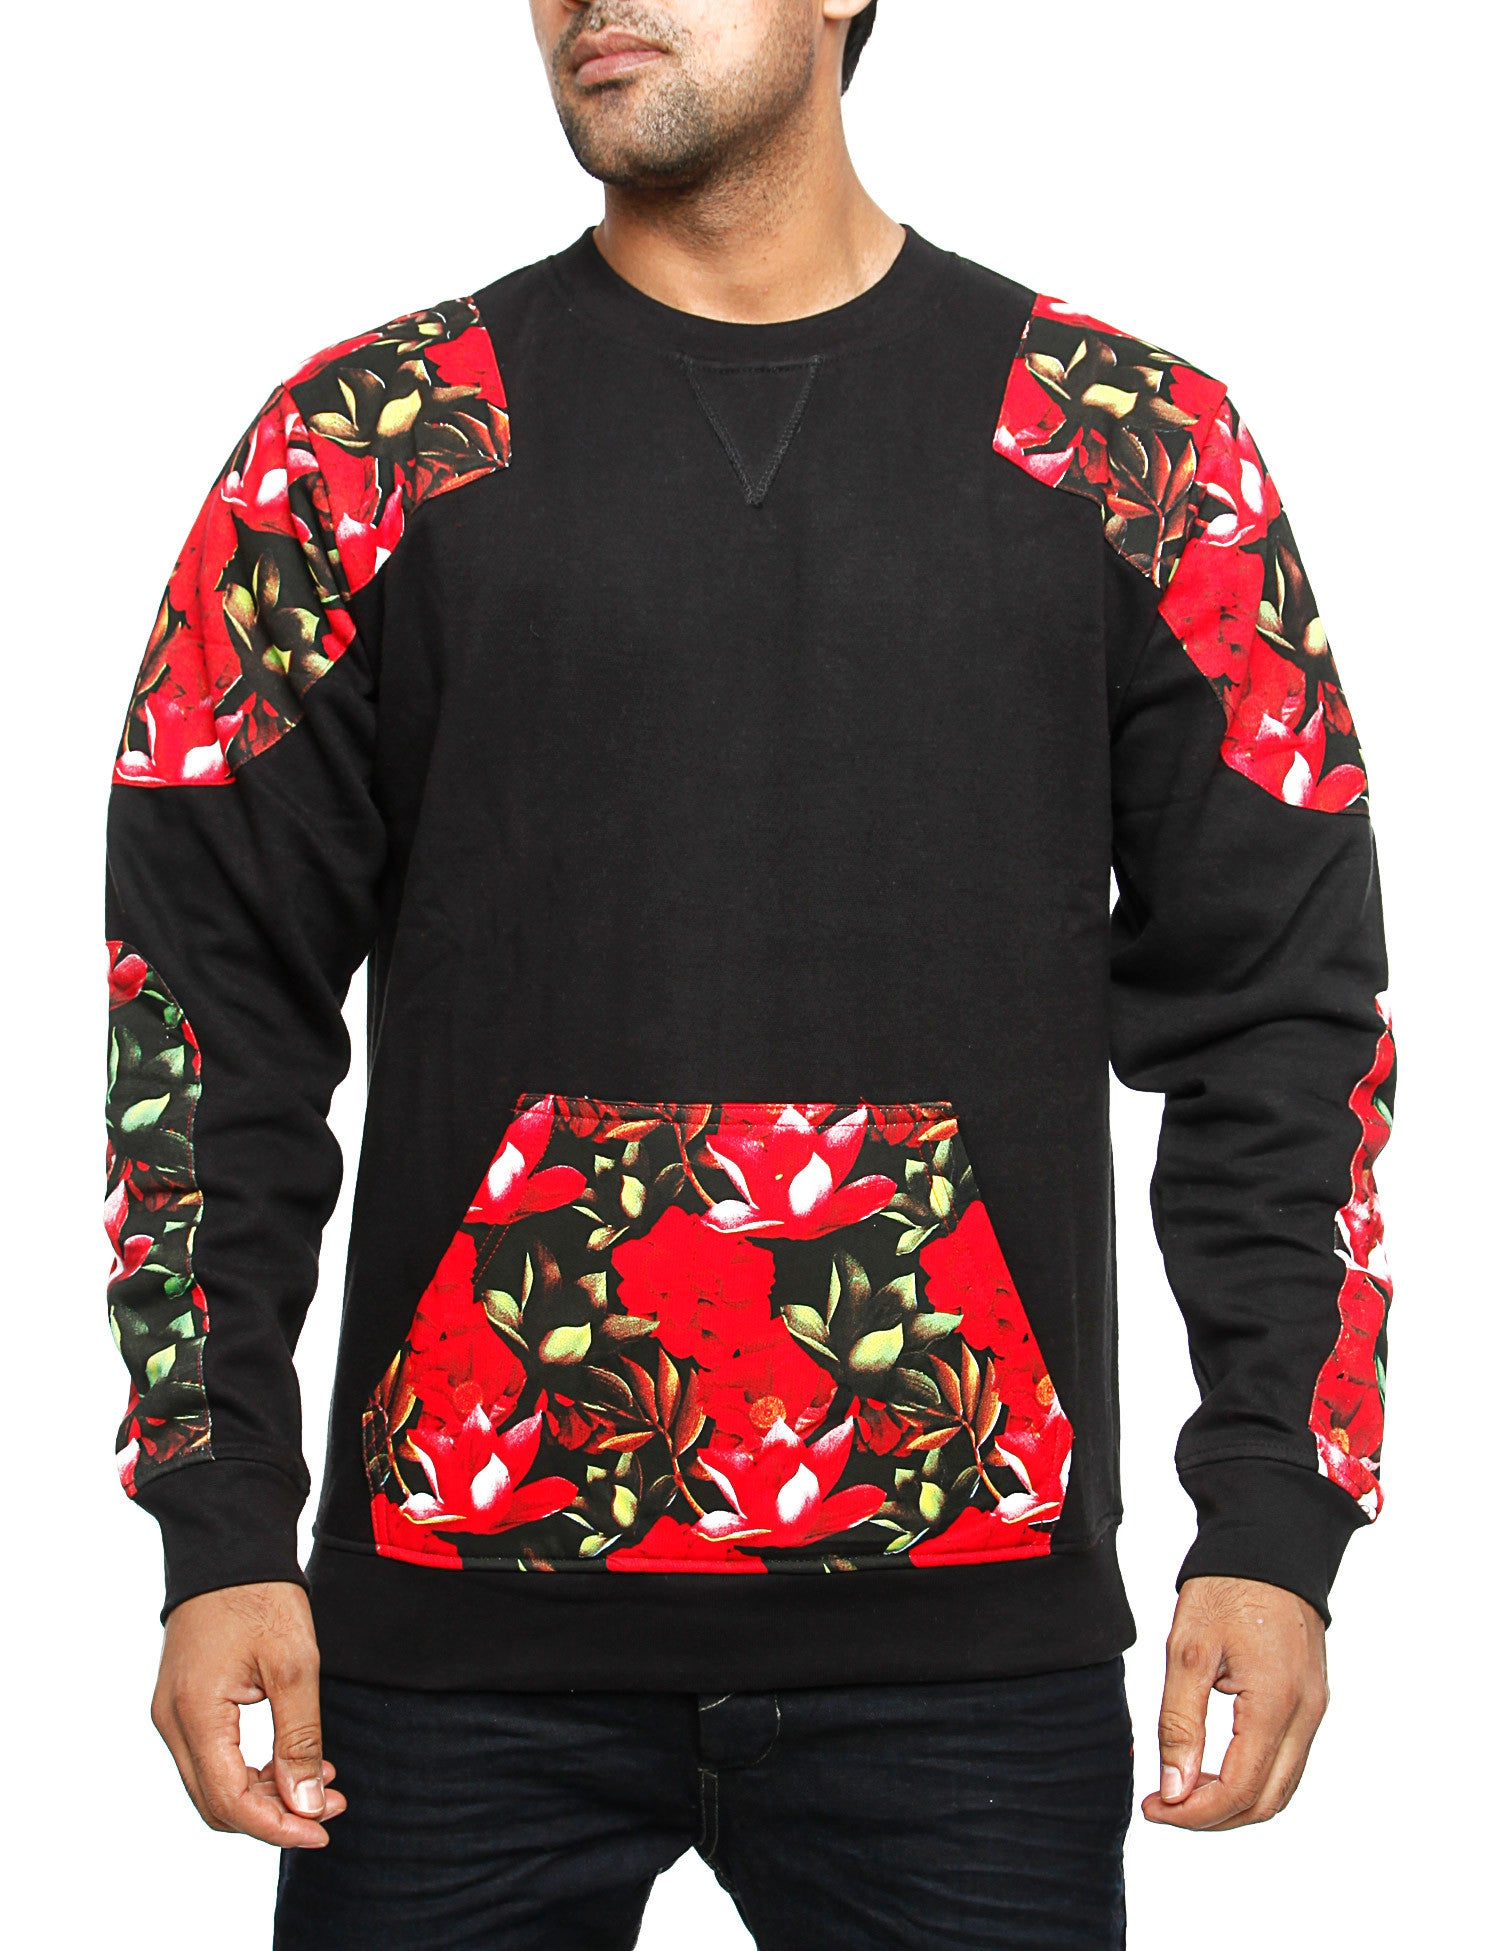 Imperious ?Tropics? Sweatshirt CS87 Black